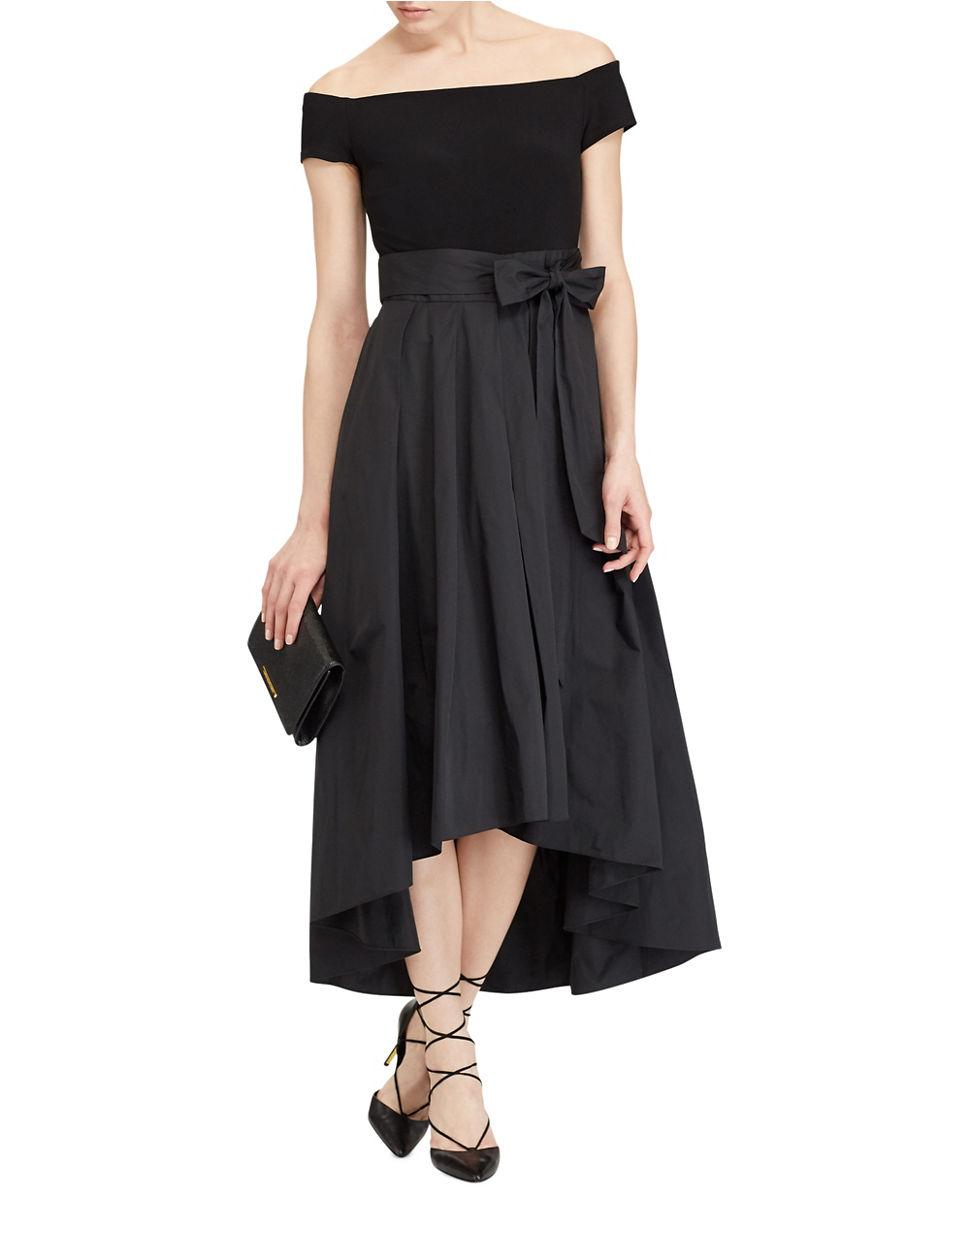 Lo lo lord and taylor party dresses - View Fullscreen